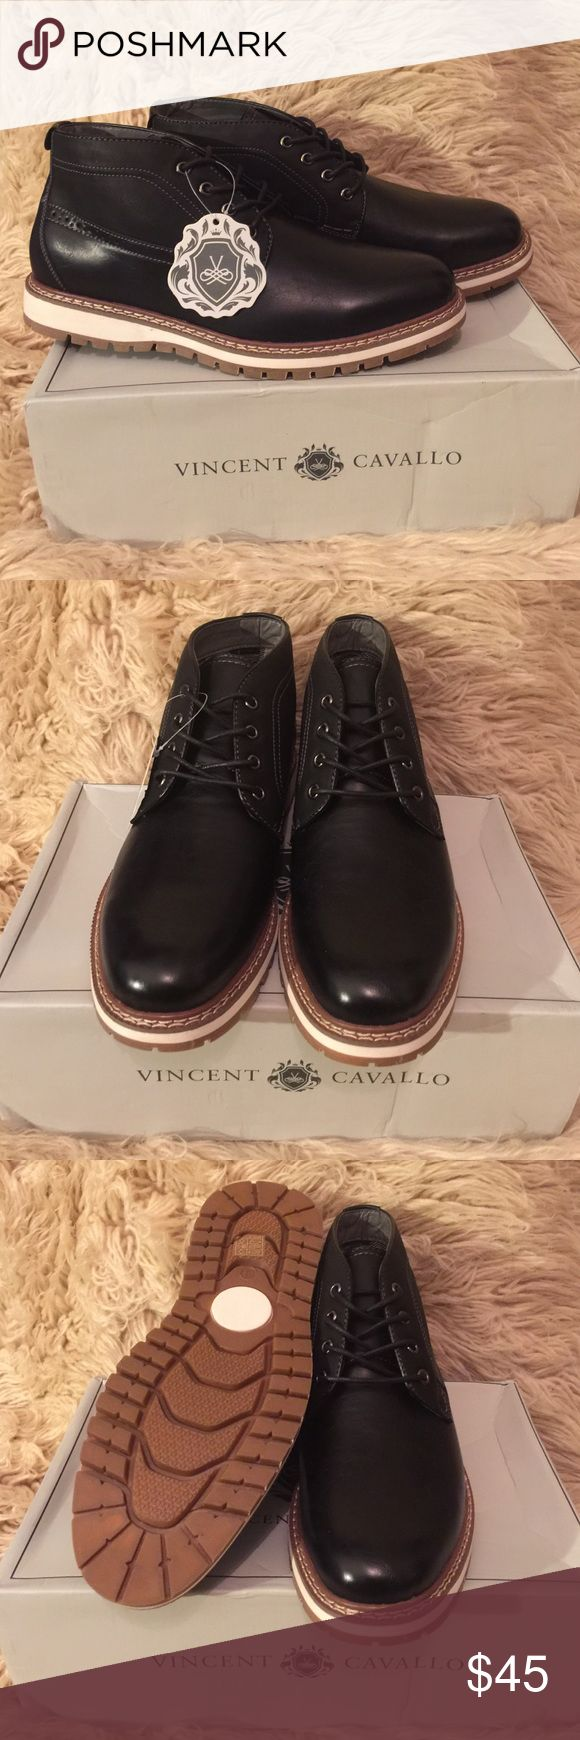 NIB VINCENT CAVALLO black Chukka boots, size 9.5 NIB VINCENT CAVALLO Black Chukka boots sz 9.5.  Ankle height cut.  Herringbone textile lining.  Rubber outsole.  Cushioned footbed.  Fits true to size. Vincent Cavallo Shoes Chukka Boots